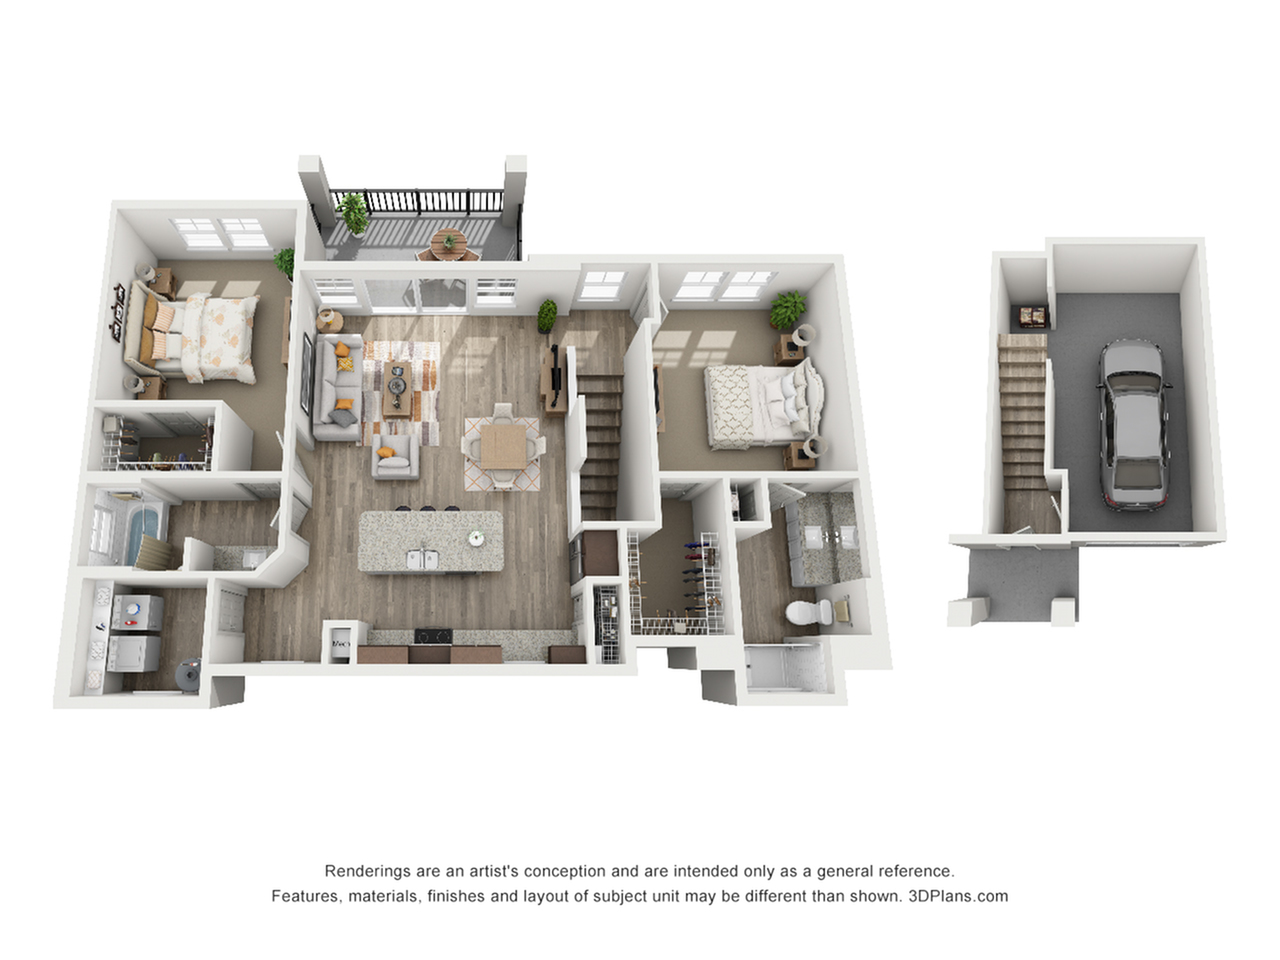 B4 - 2 bedroom, 2 bathroom Carriage House at Champions Vue